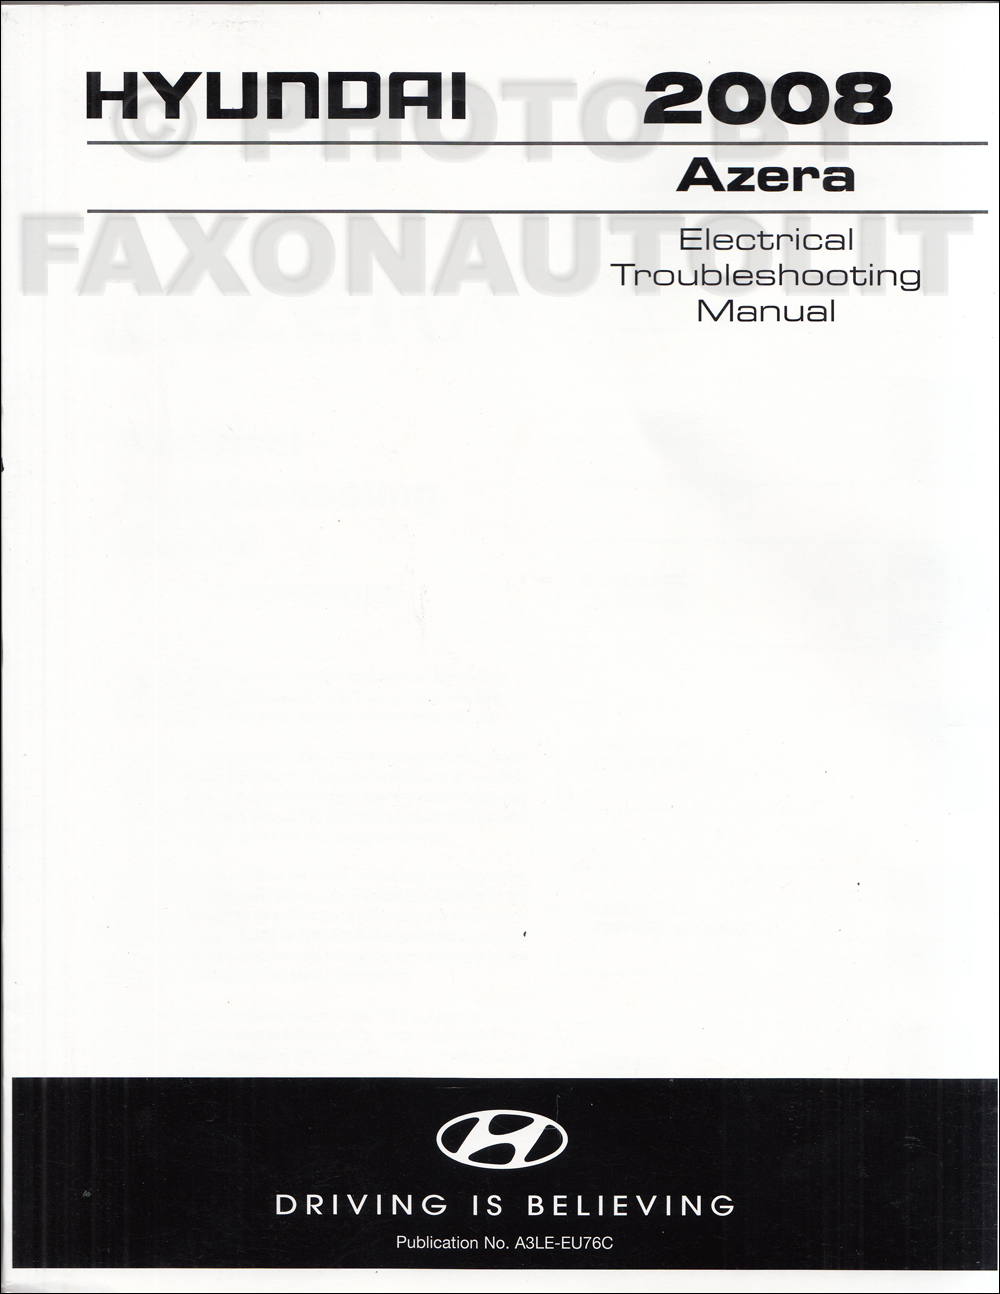 2008 Hyundai Azera Electrical Troubleshooting Manual Reprint